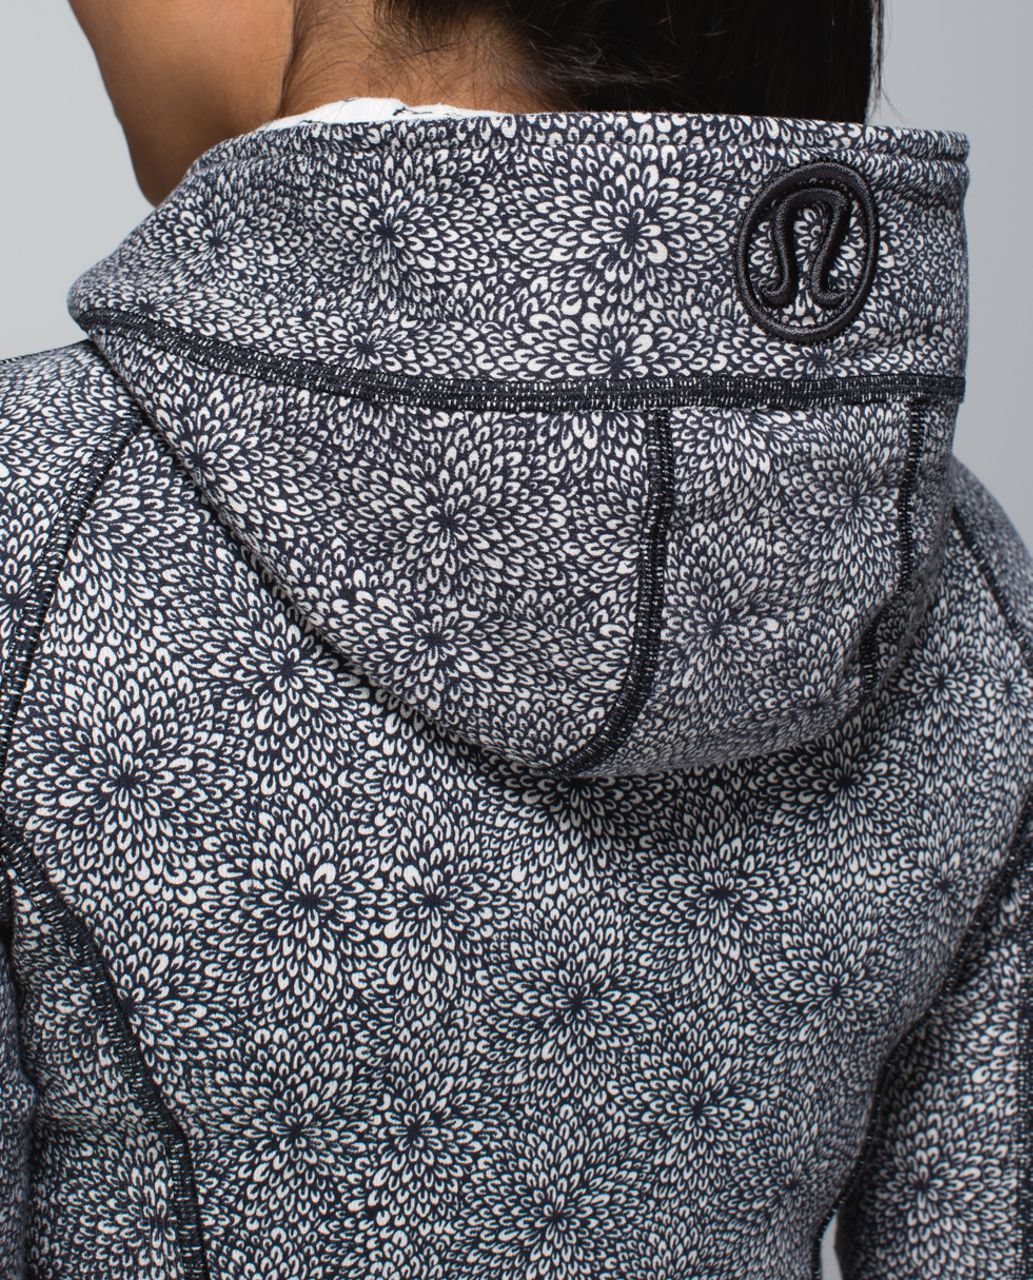 Lululemon Scuba Hoodie II - Plush Petal Deep Coal Ghost / Deep Coal